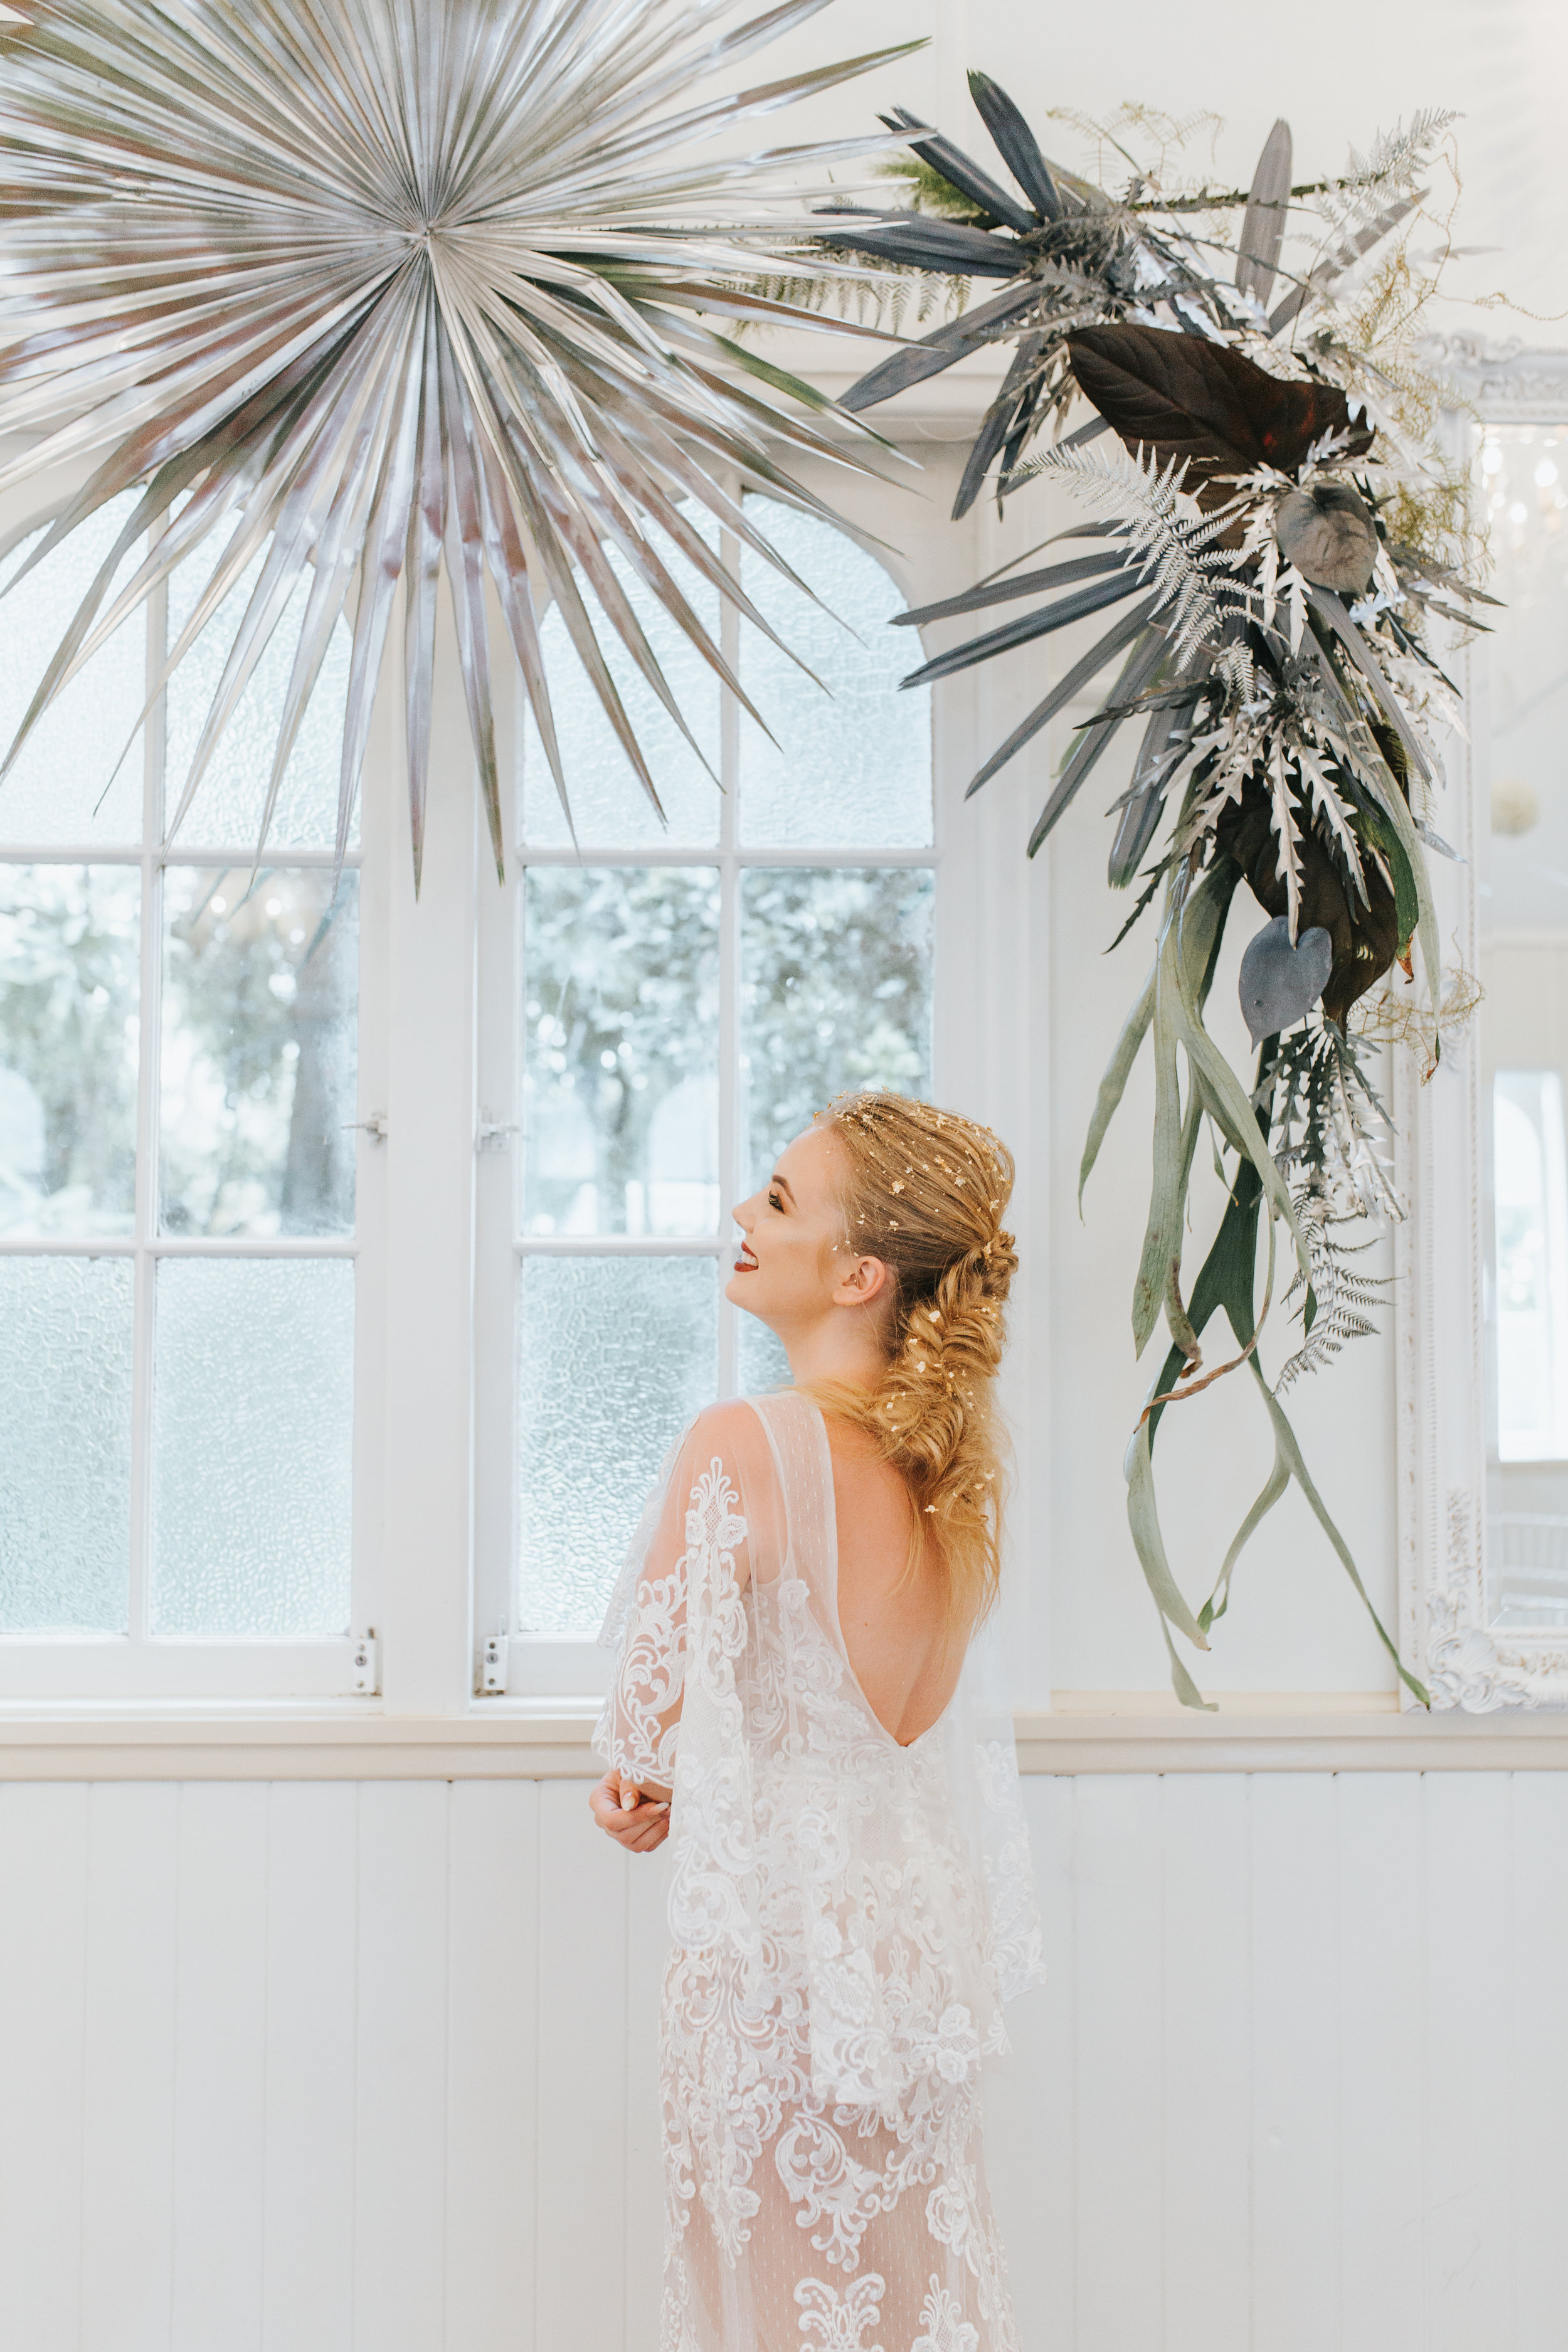 Bloodwood Botanica | Floating silver wedding arbour